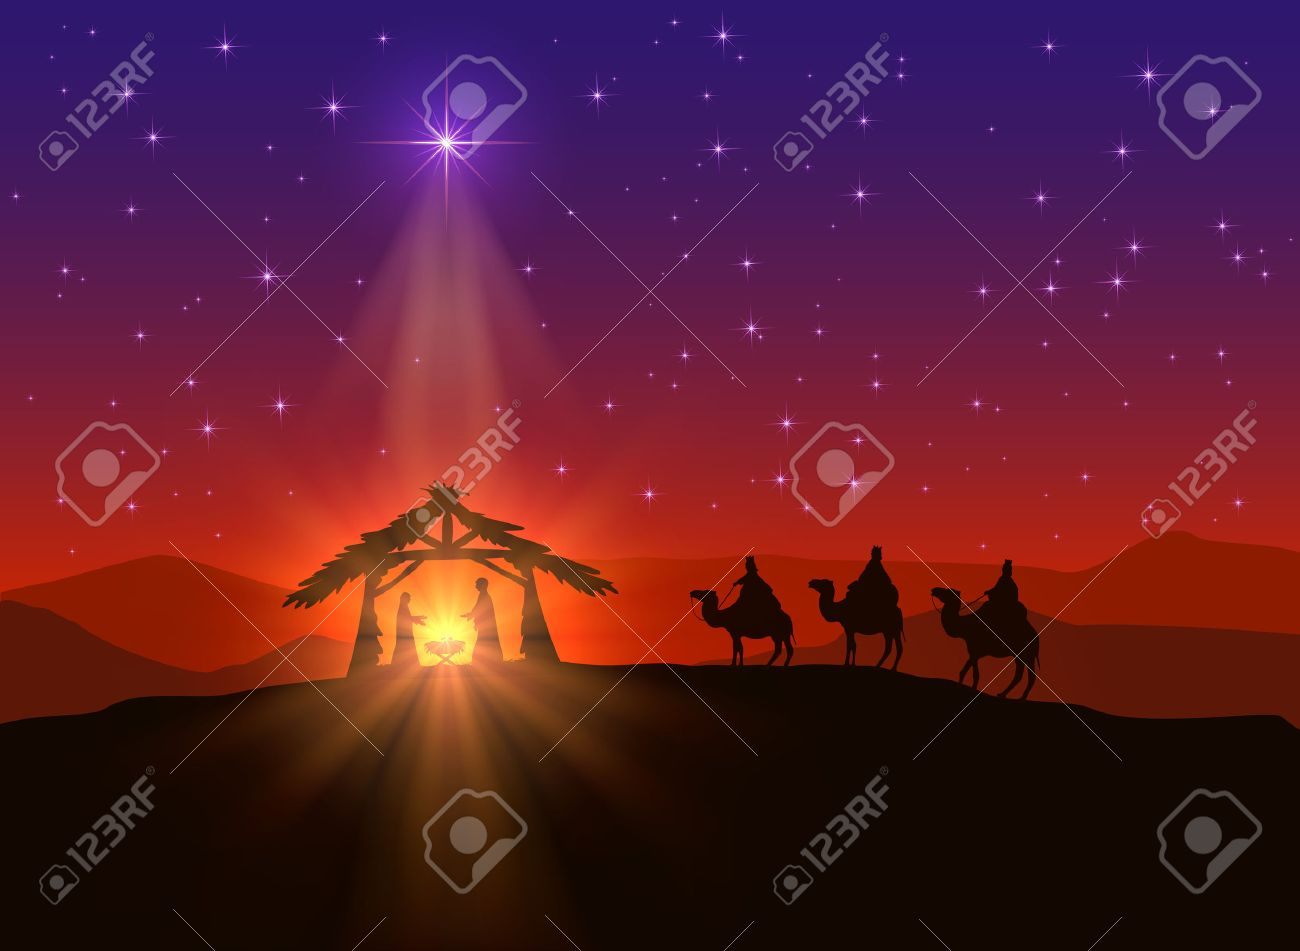 Christmas Background Christian.Christian Background With Christmas Star And Birth Of Jesus